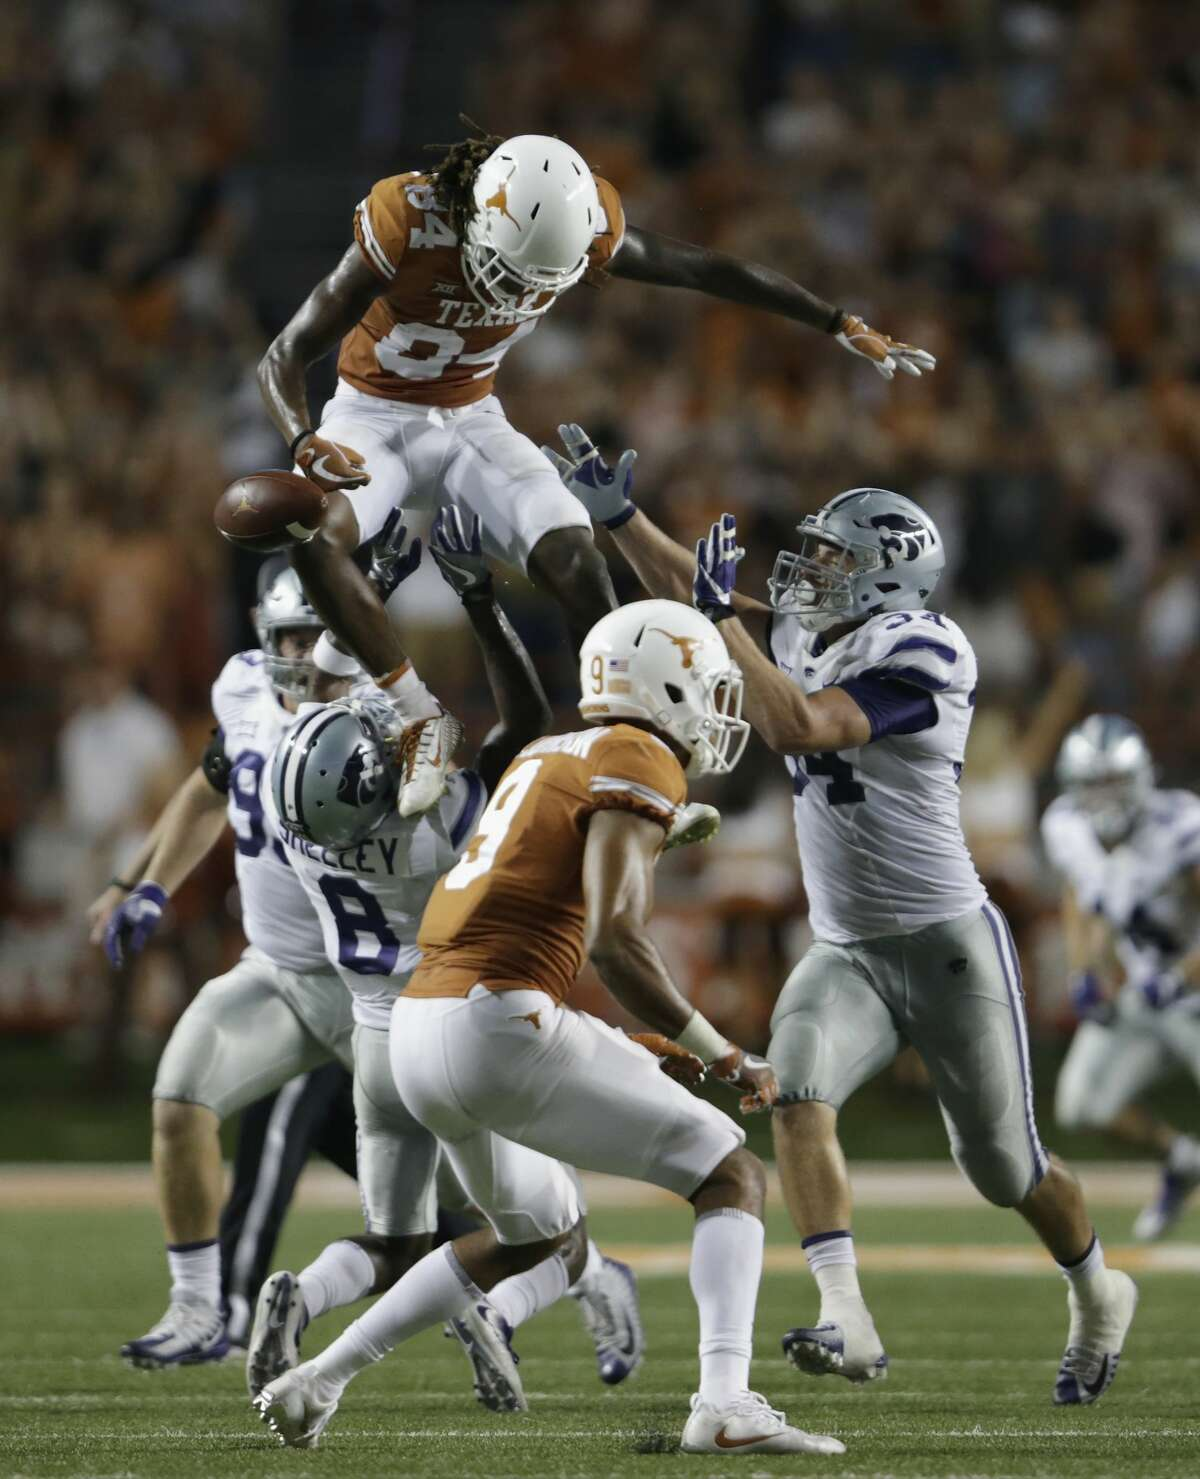 AUSTIN, TX - OCTOBER 07: Lil'Jordan Humphrey #84 of the Texas Longhorns fumbles the football after a hit by Duke Shelley #8 of the Kansas State Wildcats in the fourth quarter at Darrell K Royal-Texas Memorial Stadium on October 7, 2017 in Austin, Texas. (Photo by Tim Warner/Getty Images)